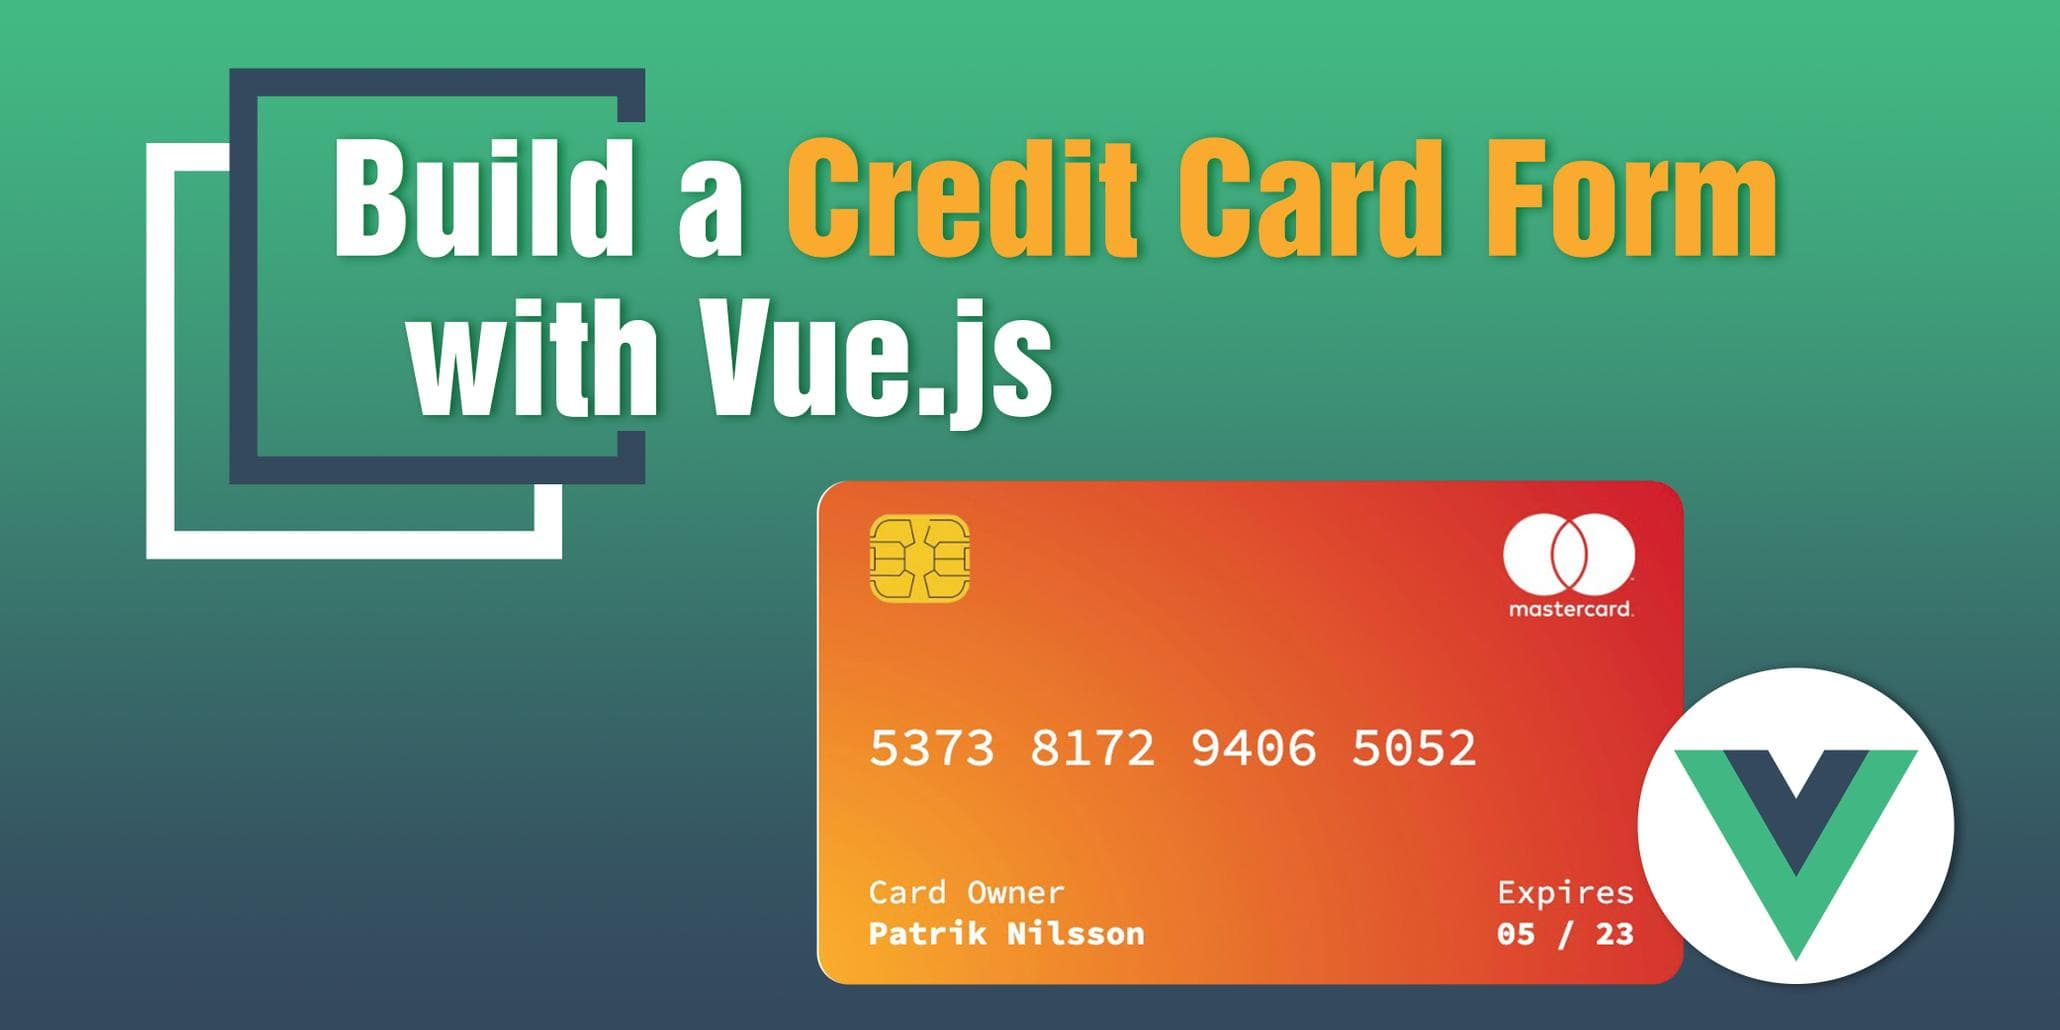 Build a credit card form with Vue.js